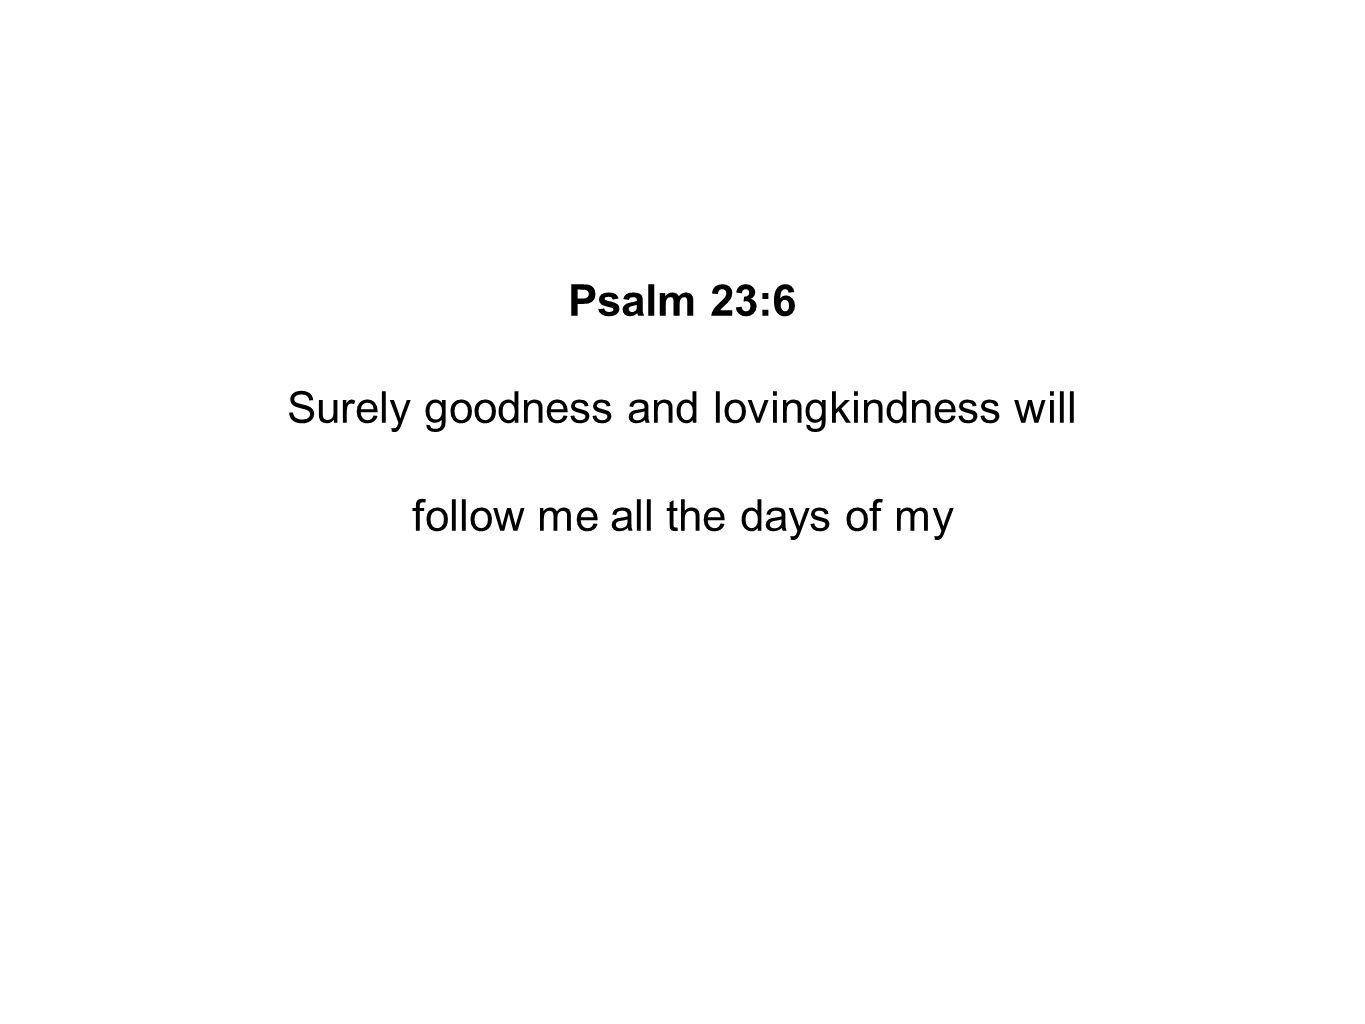 Psalm 23:6 Surely goodness and lovingkindness will follow me all the days of my